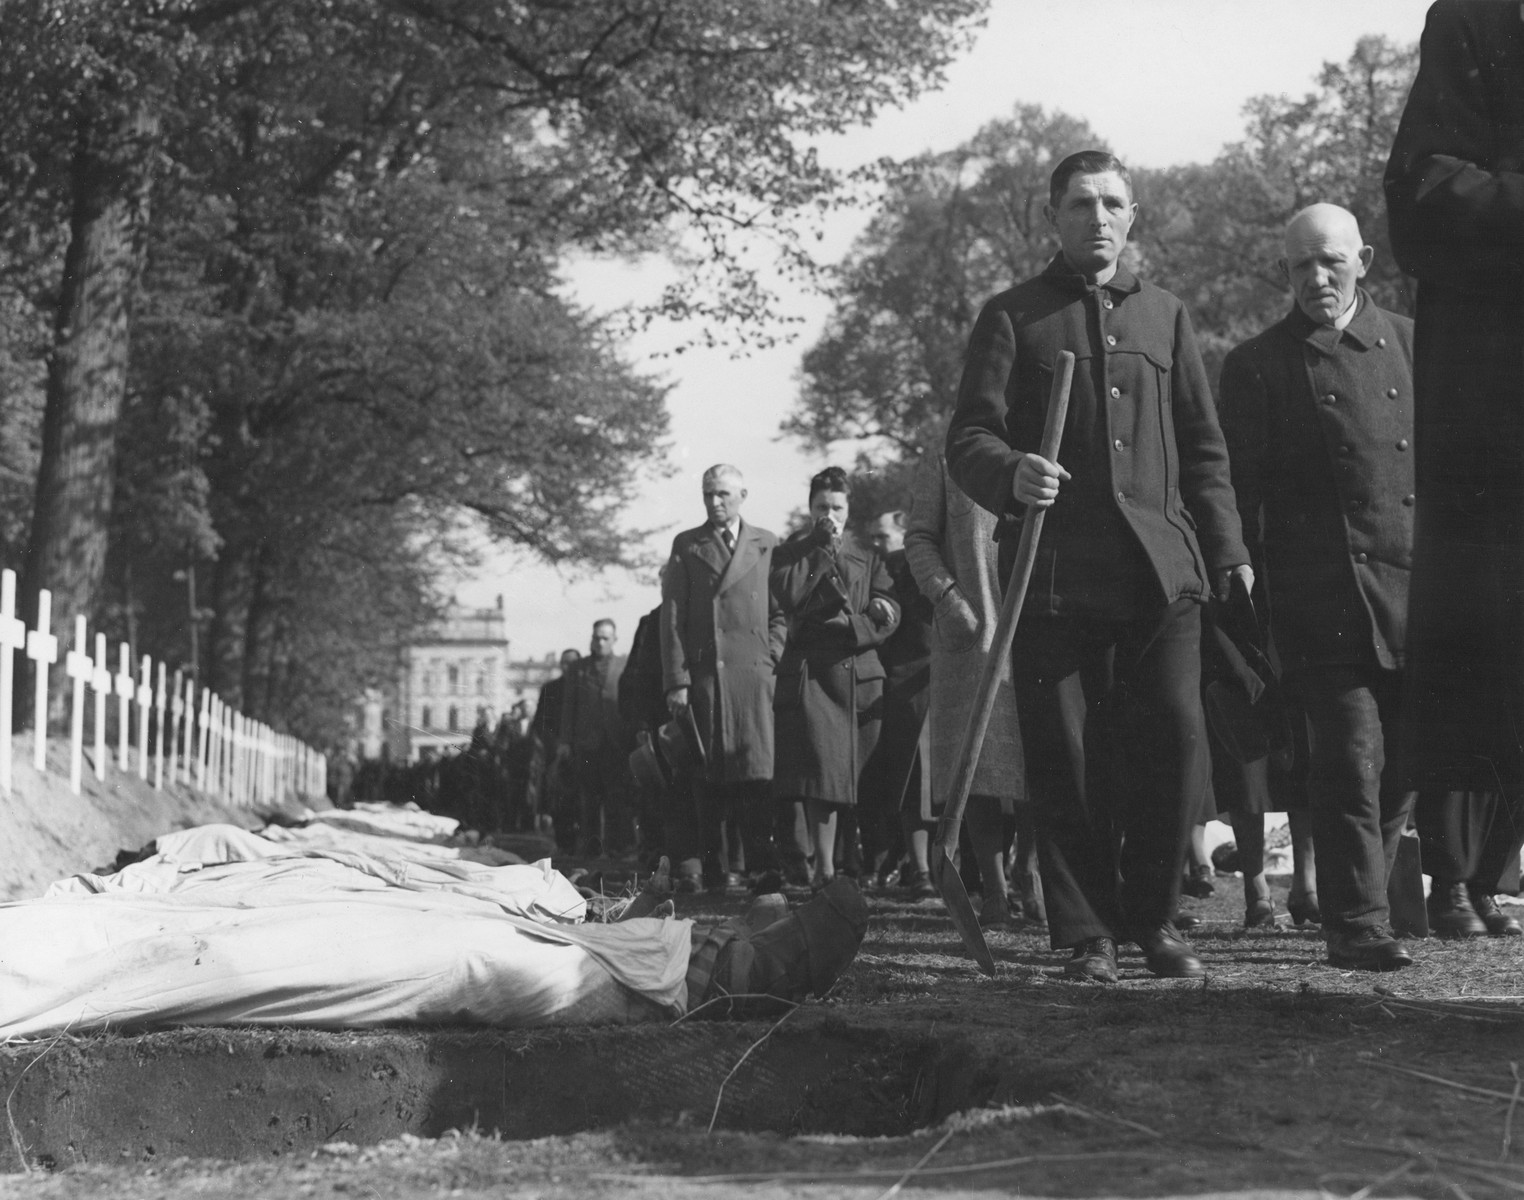 Upon the orders of the U.S. Army, the population of Ludwigslust files past the bodies of prisoners killed in the Woebbelin concentration camp, which have been laid out for burial in individual graves on the palace grounds of the Archduke of Mecklenburg.  The men carry shovels to bury the victims.